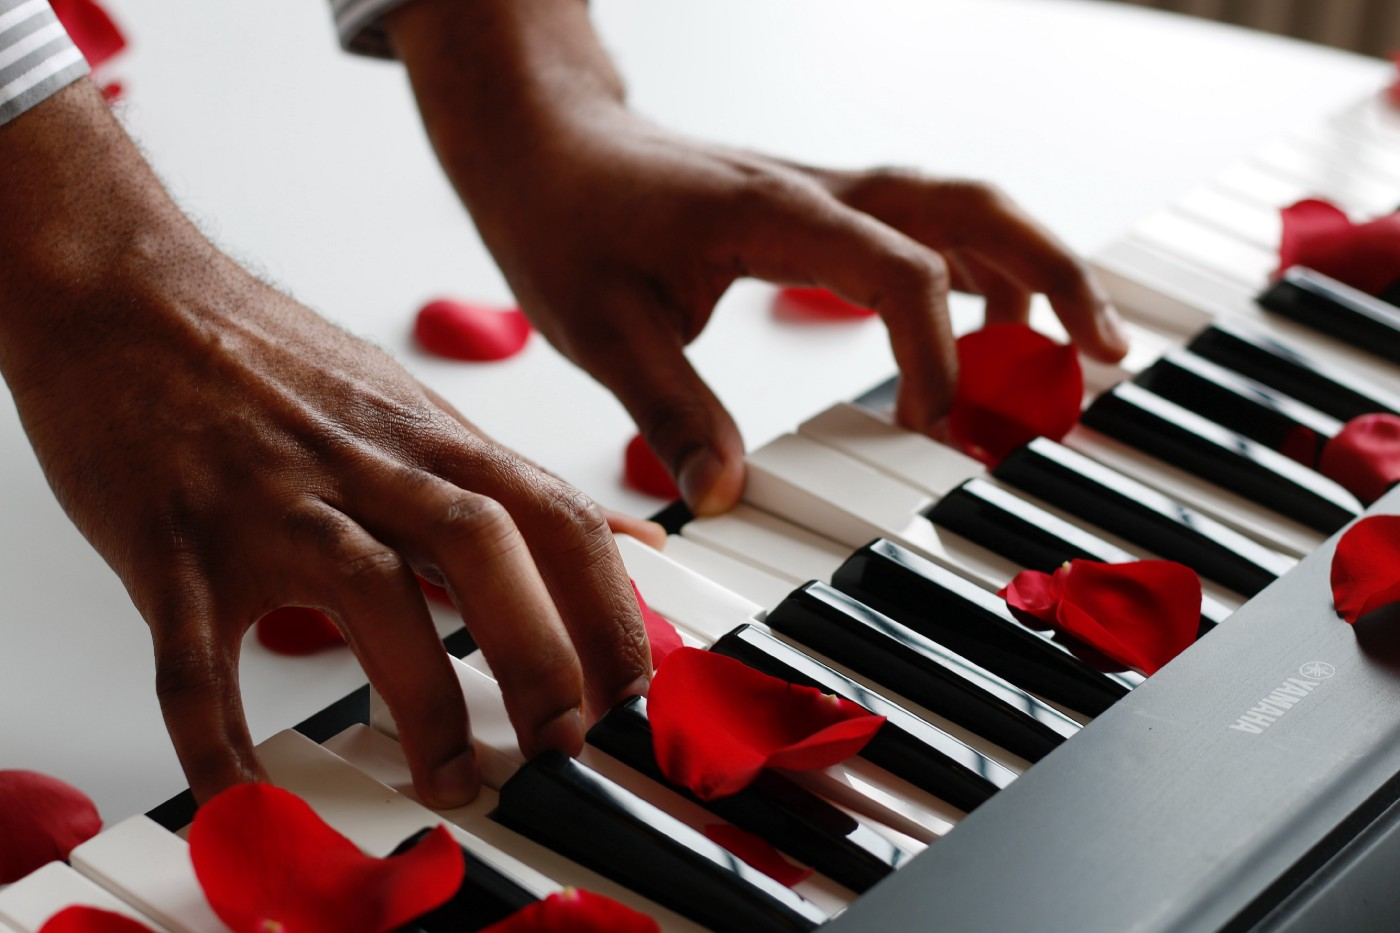 Brown hands playing a keyboard with rose petals scattered over it